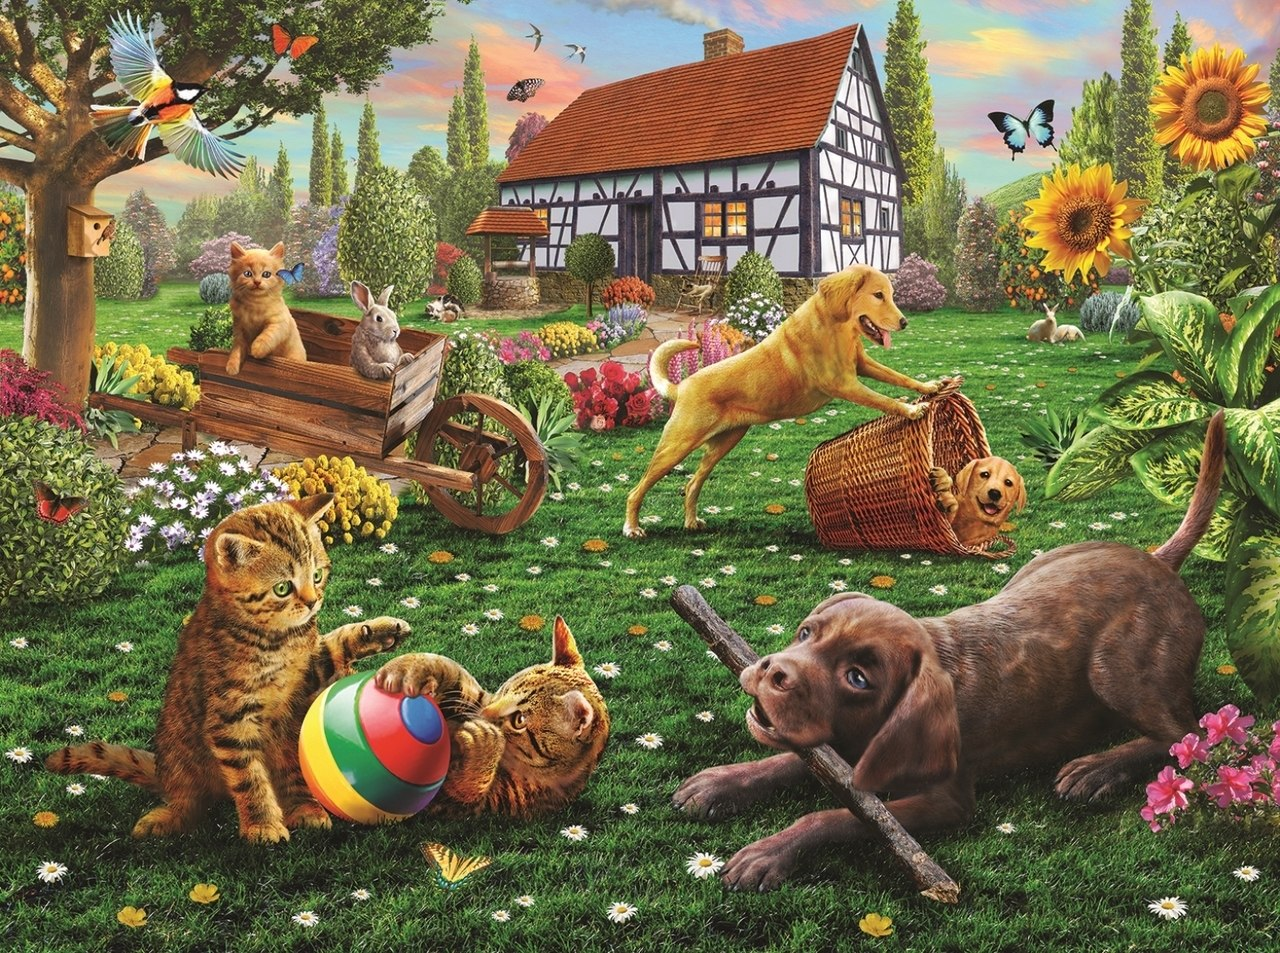 Dogs and Cats at Play - 1000pc Jigsaw Puzzle By Sunsout  			  					NEW